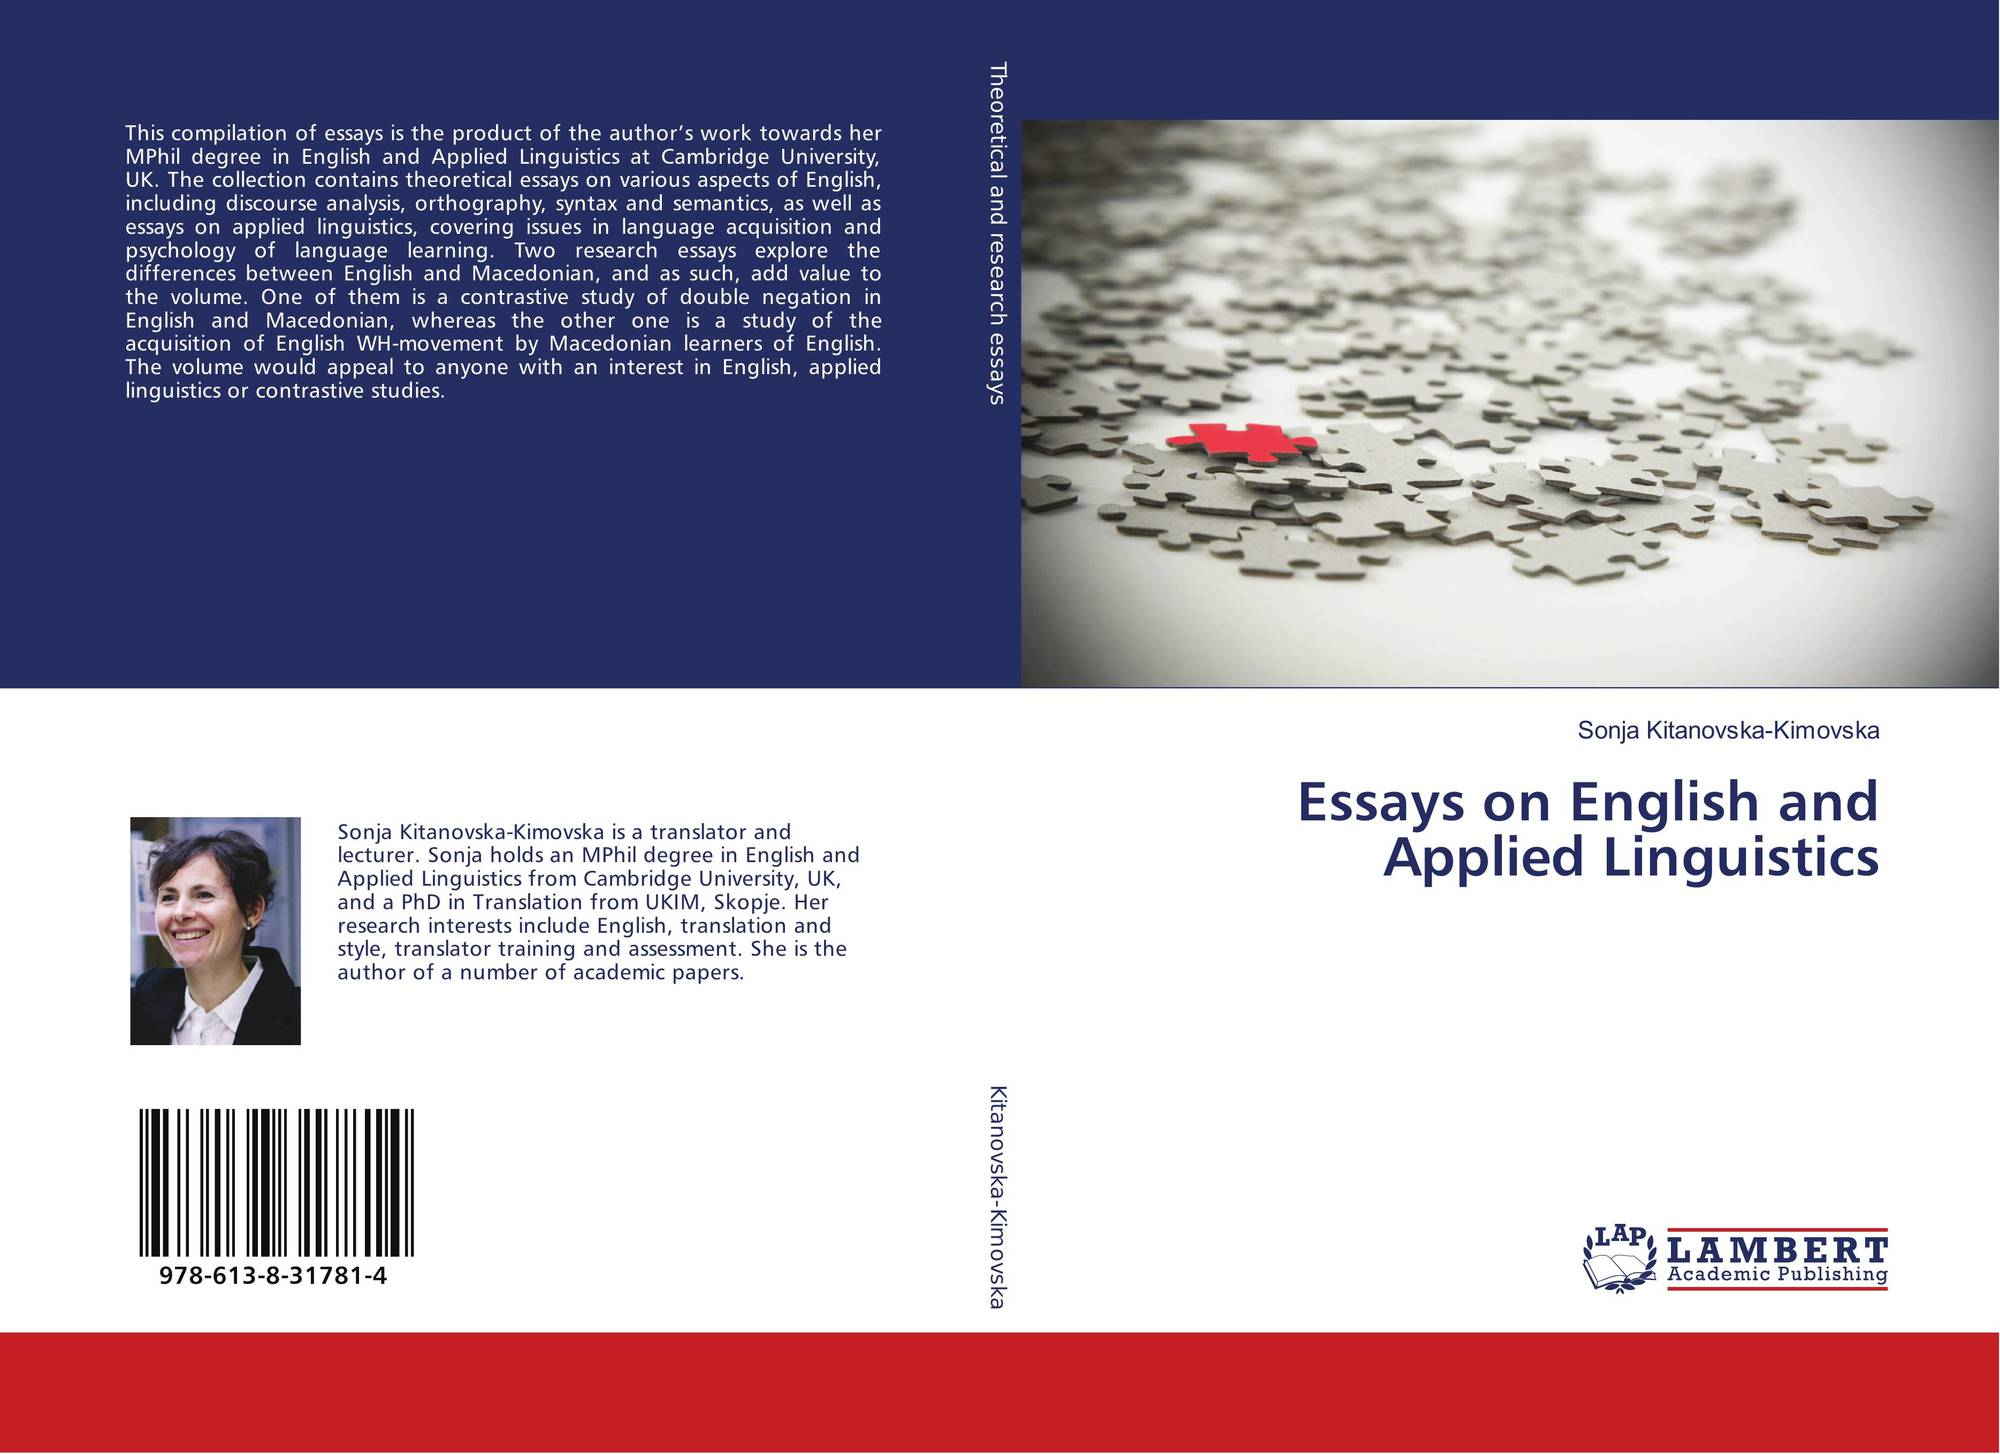 essays on linguistics History of historical linguistics modern historical linguistics dates from the late 18th century and grew out of the earlier discipline of philology, the study of ancient texts and documents, which goes back to antiquity.